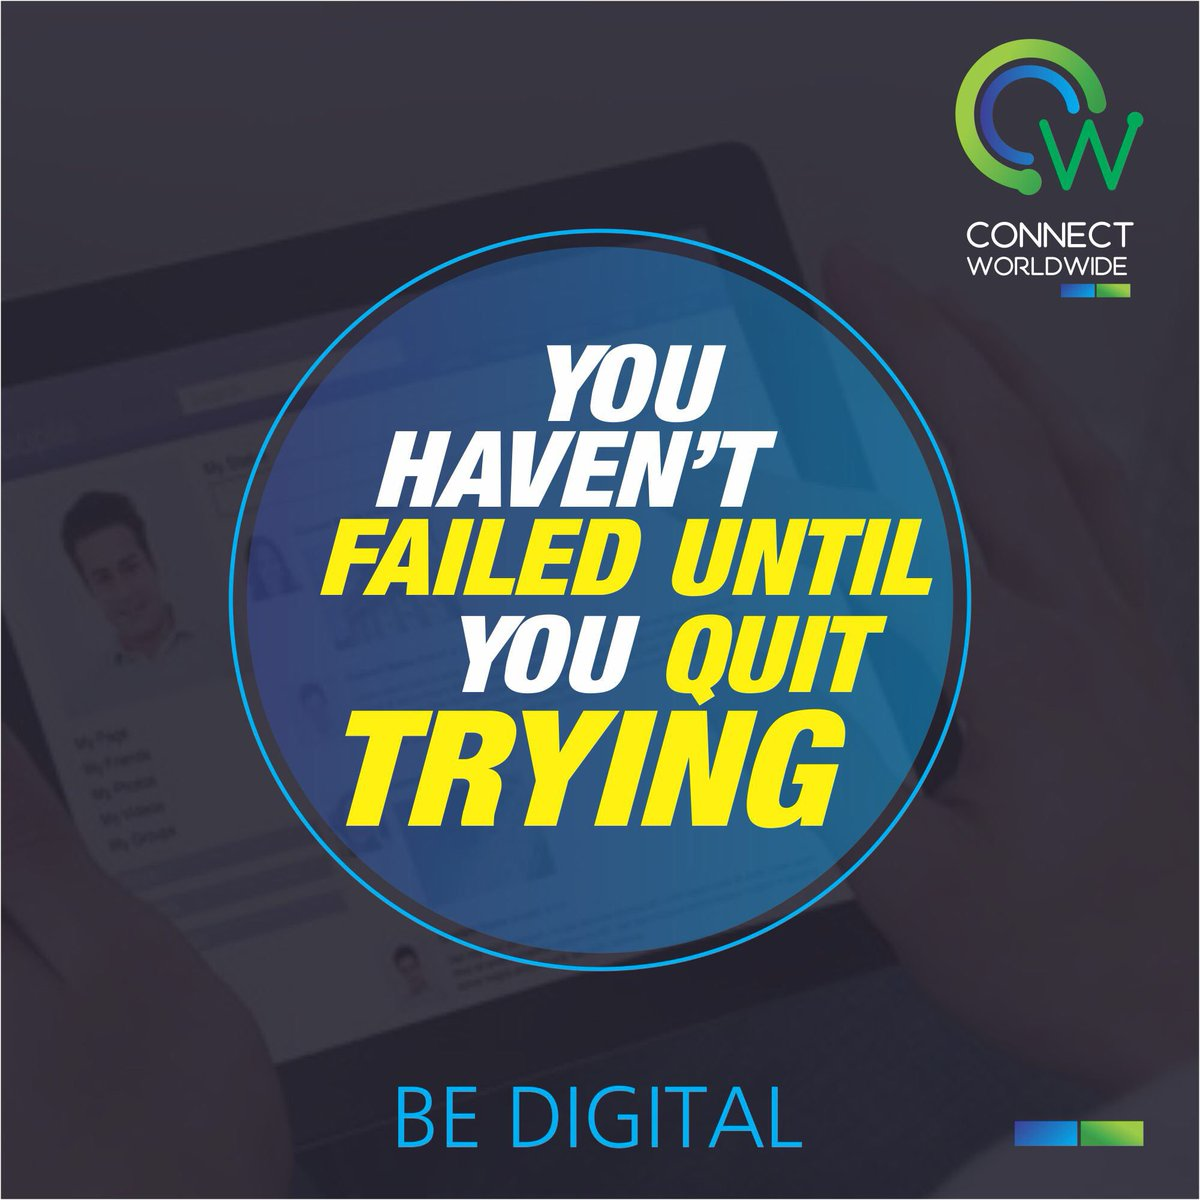 So keep trying until you #succeed #MondayMotivation #BeDigital https:/...